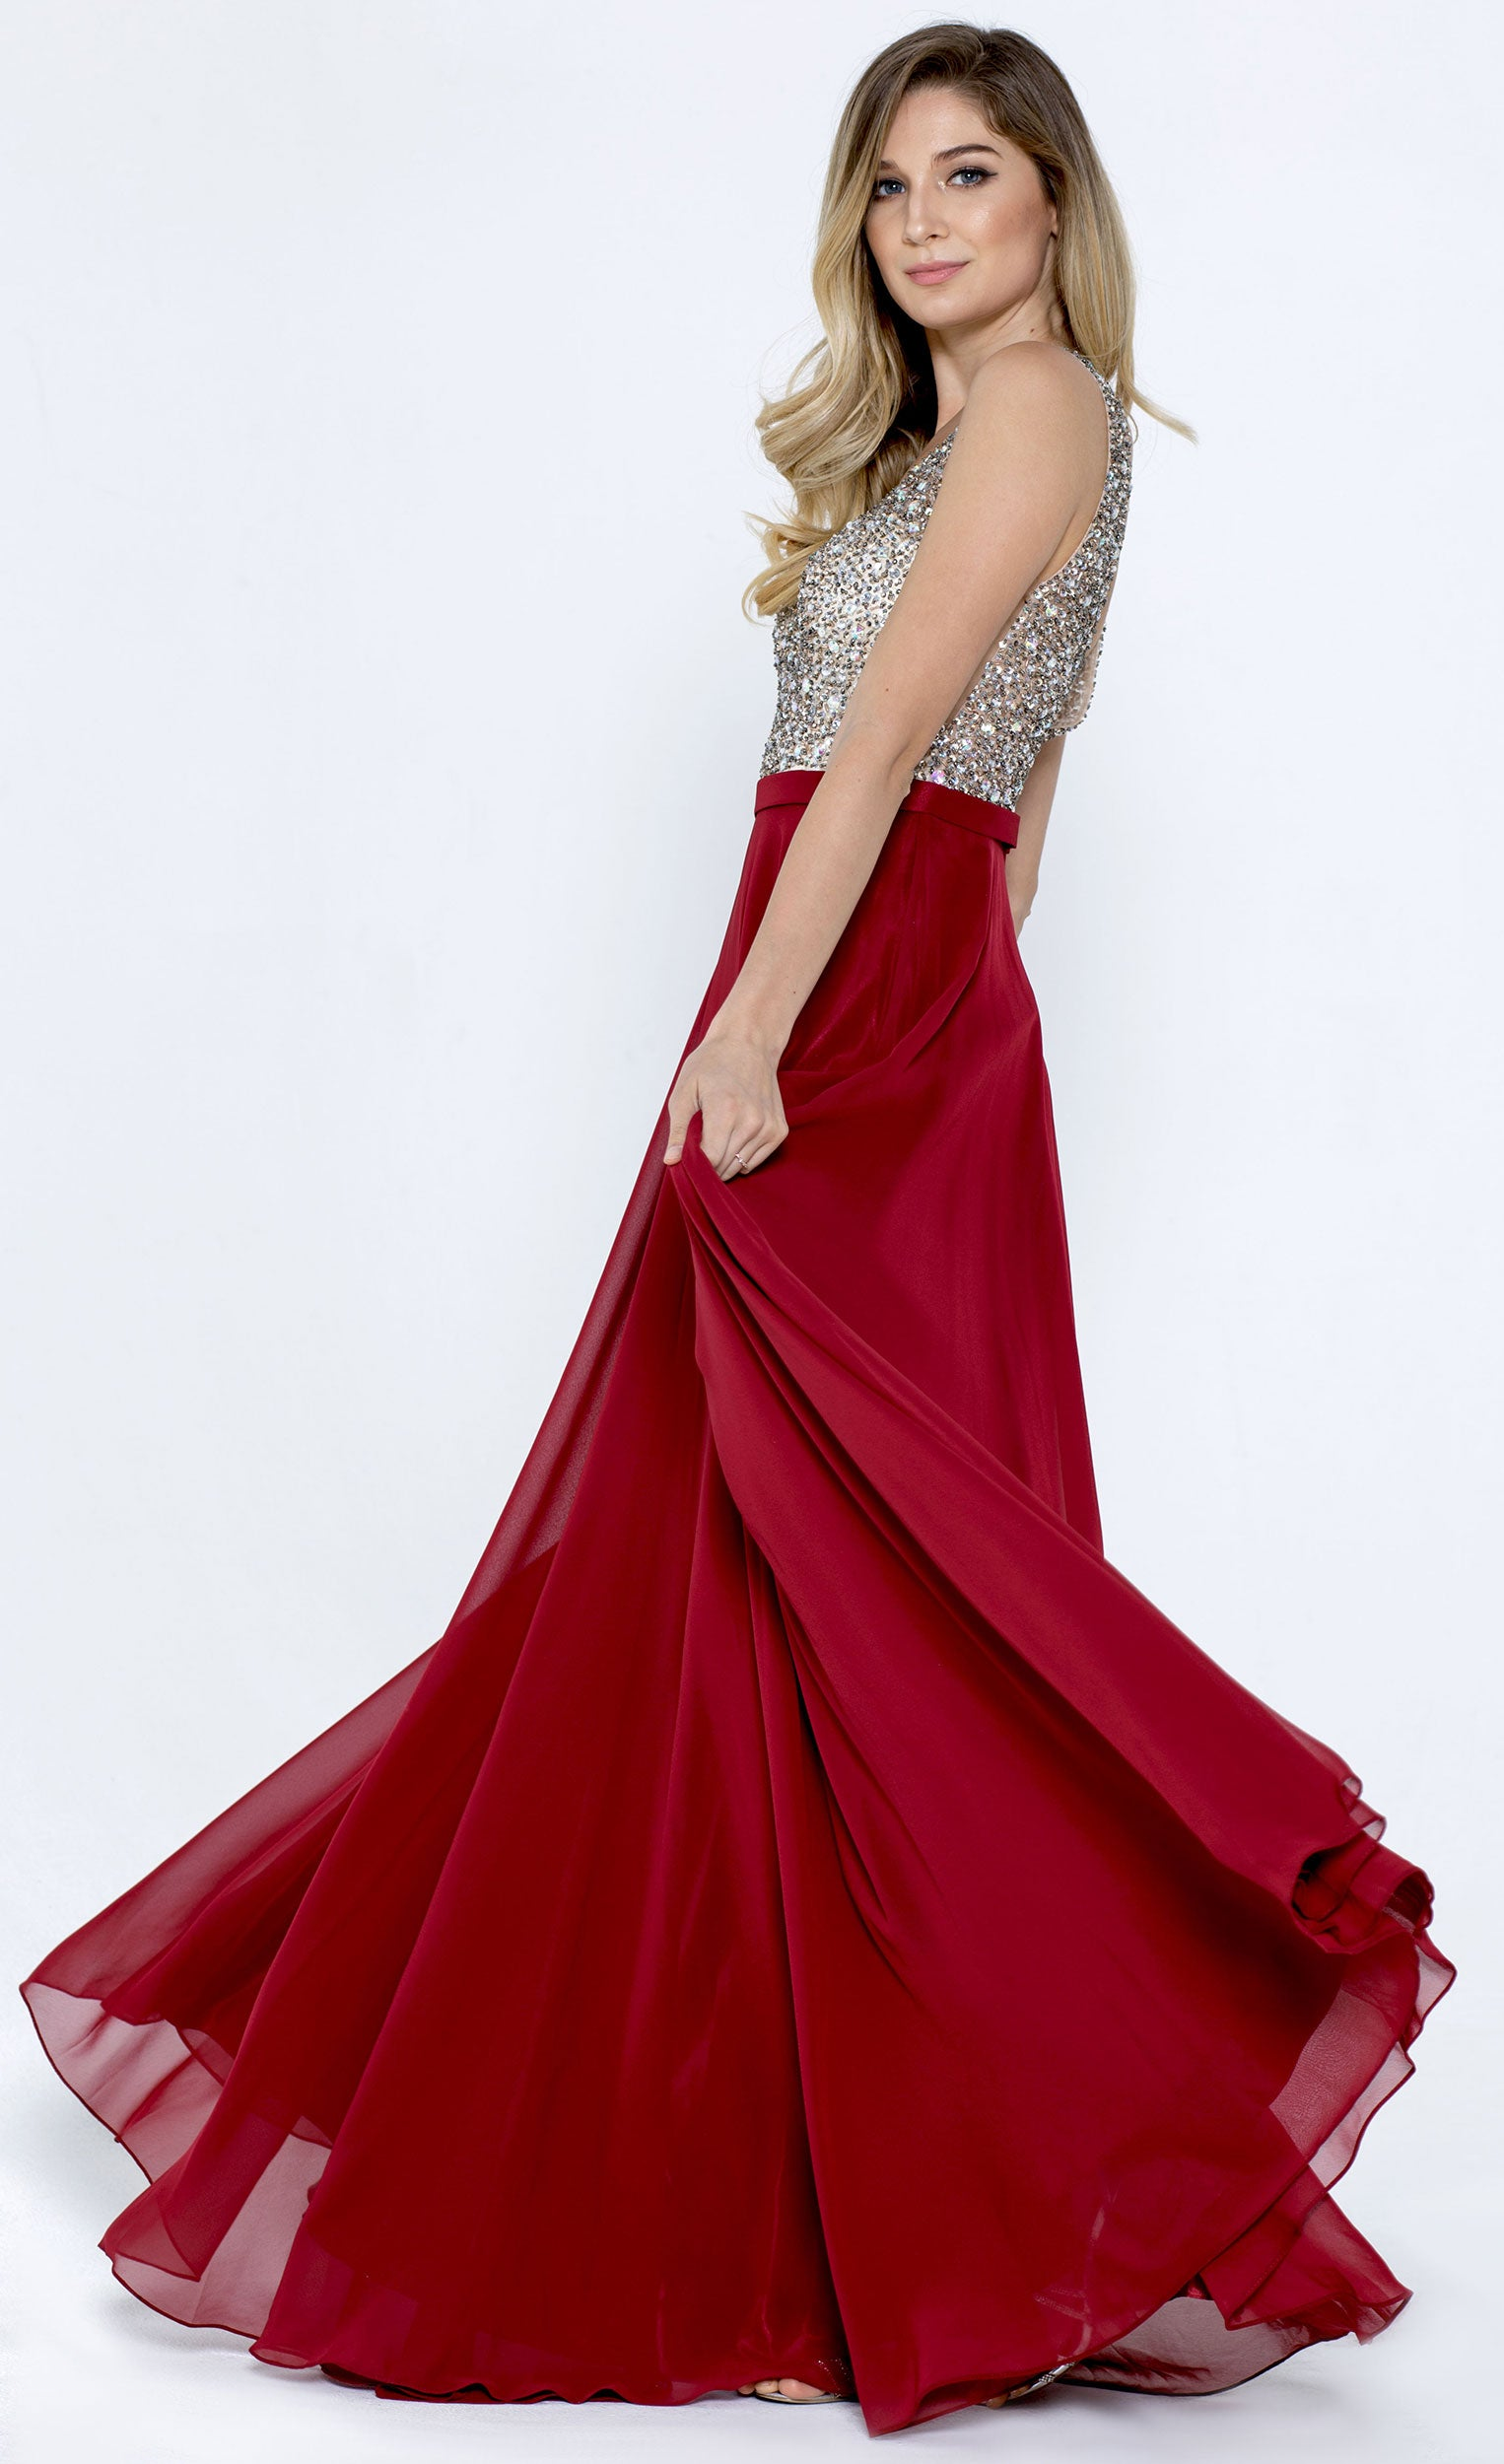 Main image of Bejeweled Bodice V-neck Sleeveless Long Prom Dress